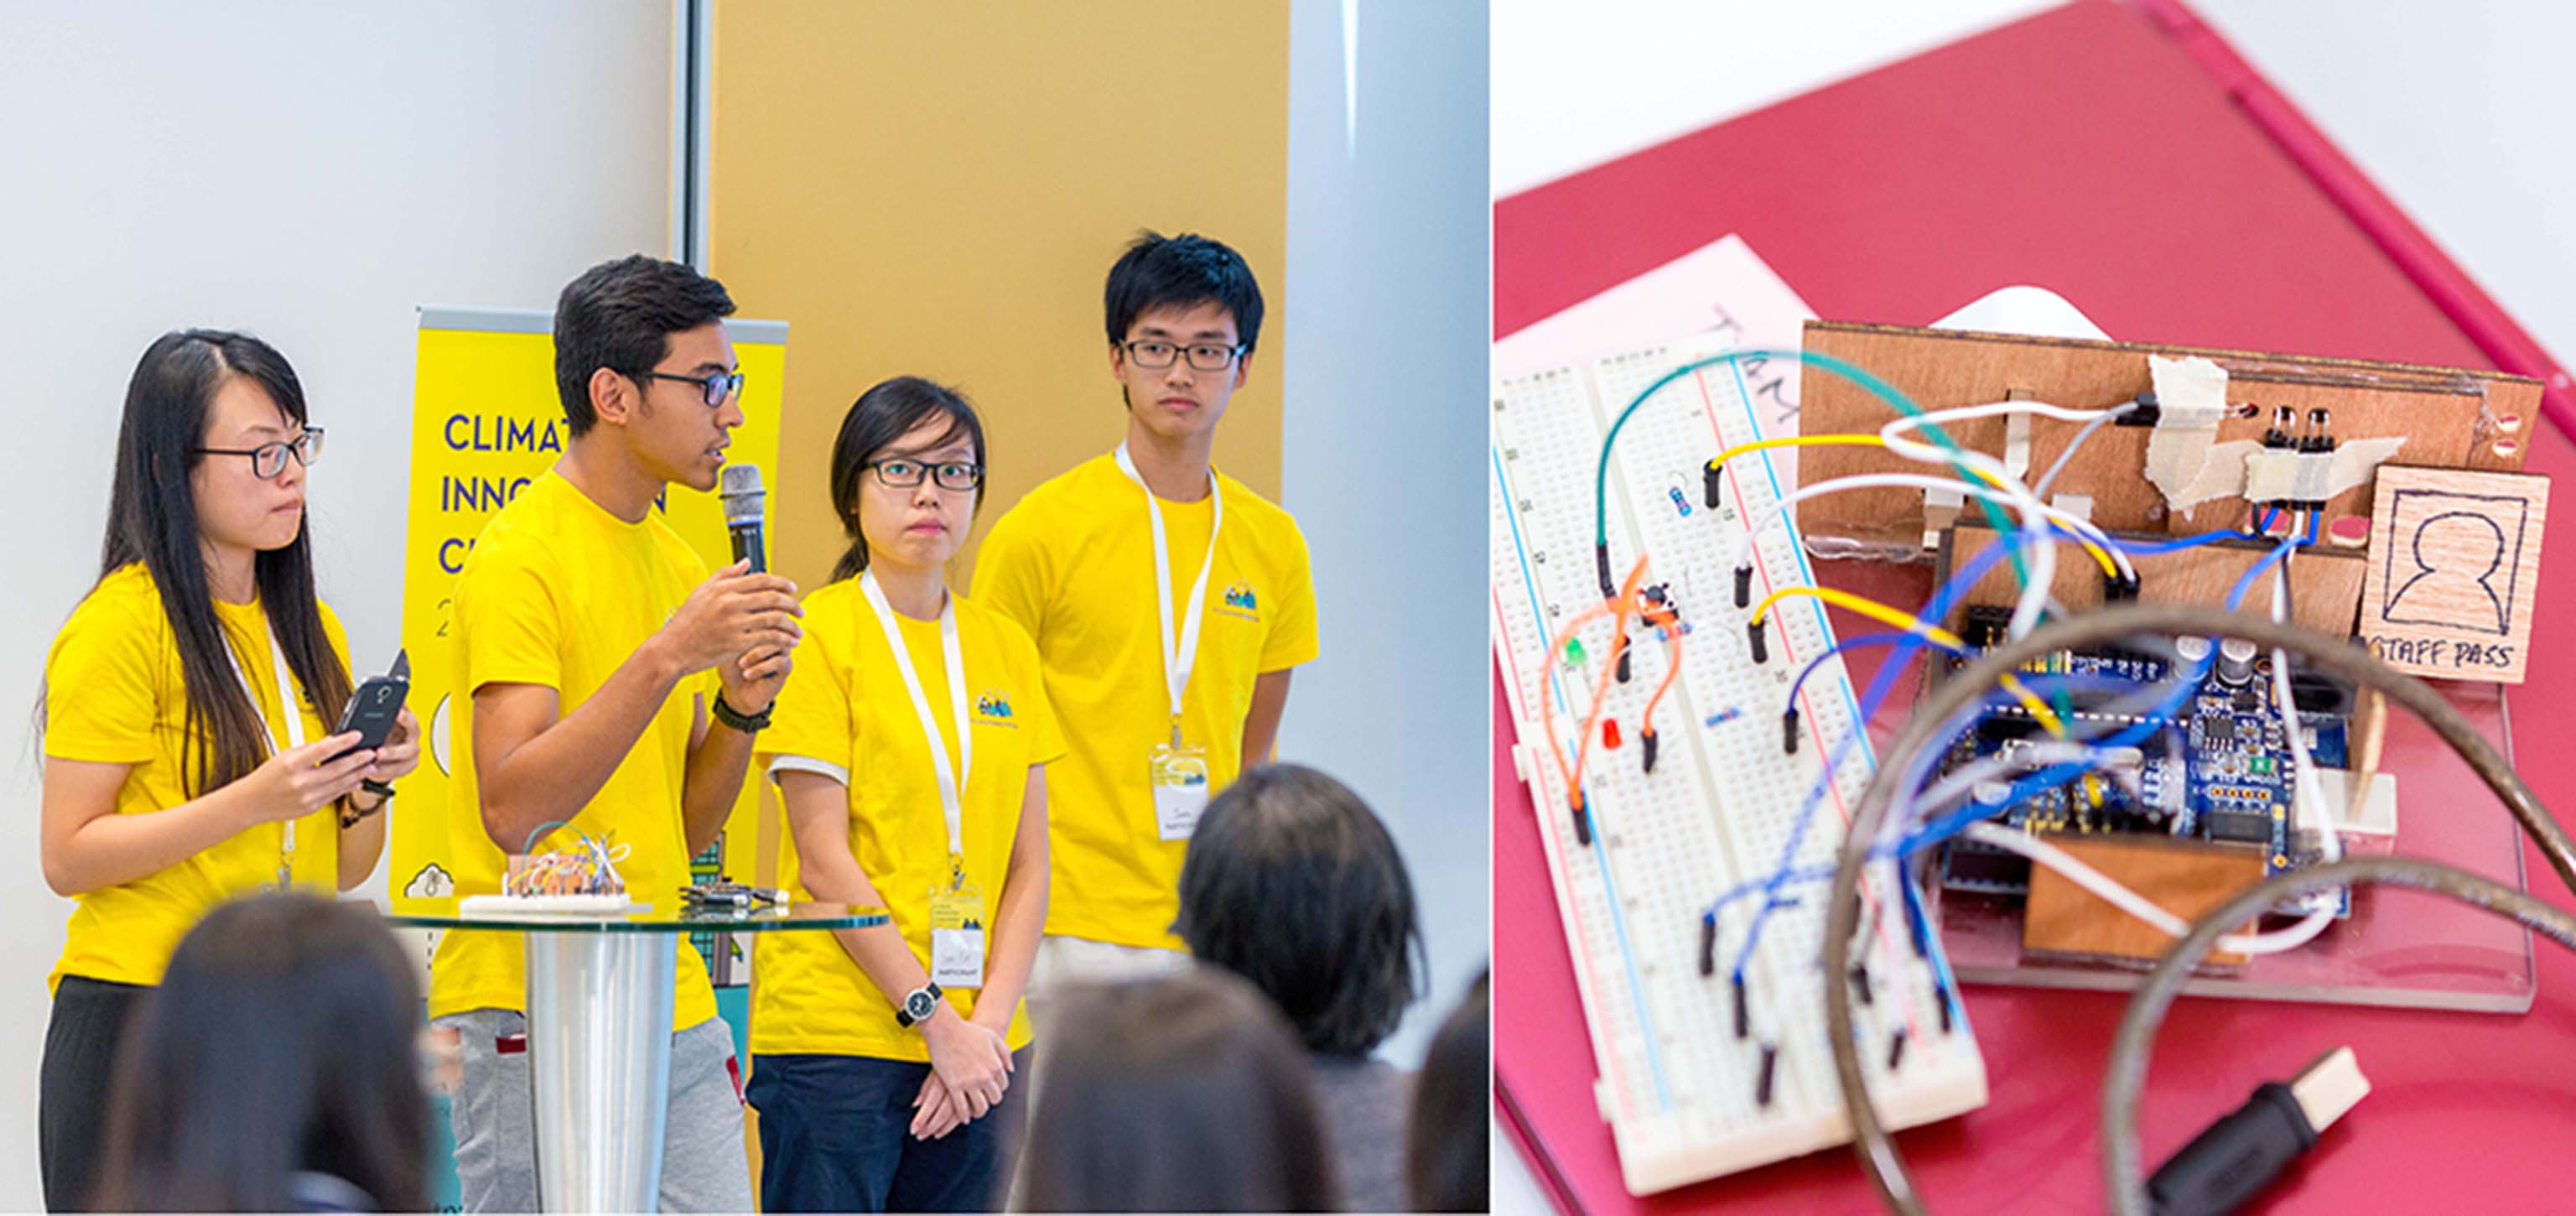 The top-winning team explains how its power monitoring system allows users to track their energy usage using radio-frequency identification (RFID) technology. It hopes that personalised statistics about energy use will motivate users to adopt energy-saving habits in the office.